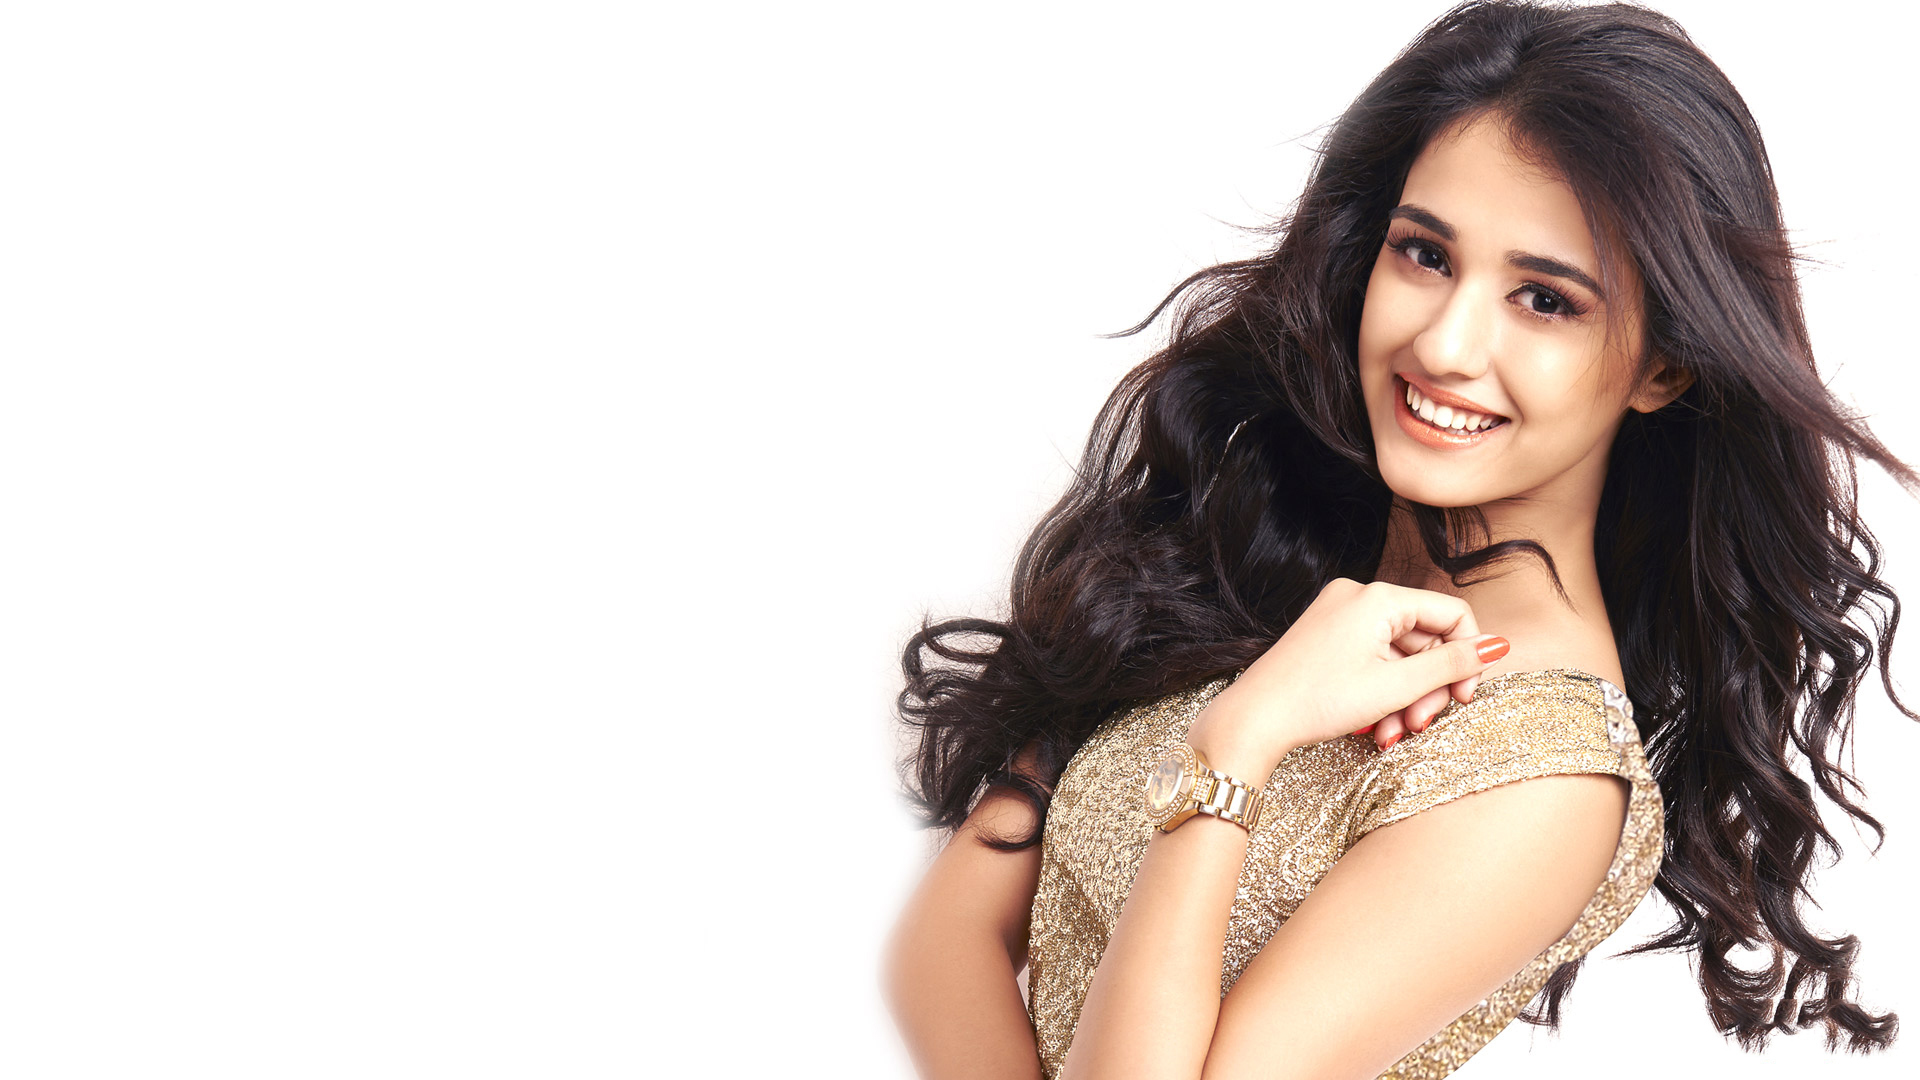 10442 Disha Patani backgrounds wallpapers 2019 1920x1080